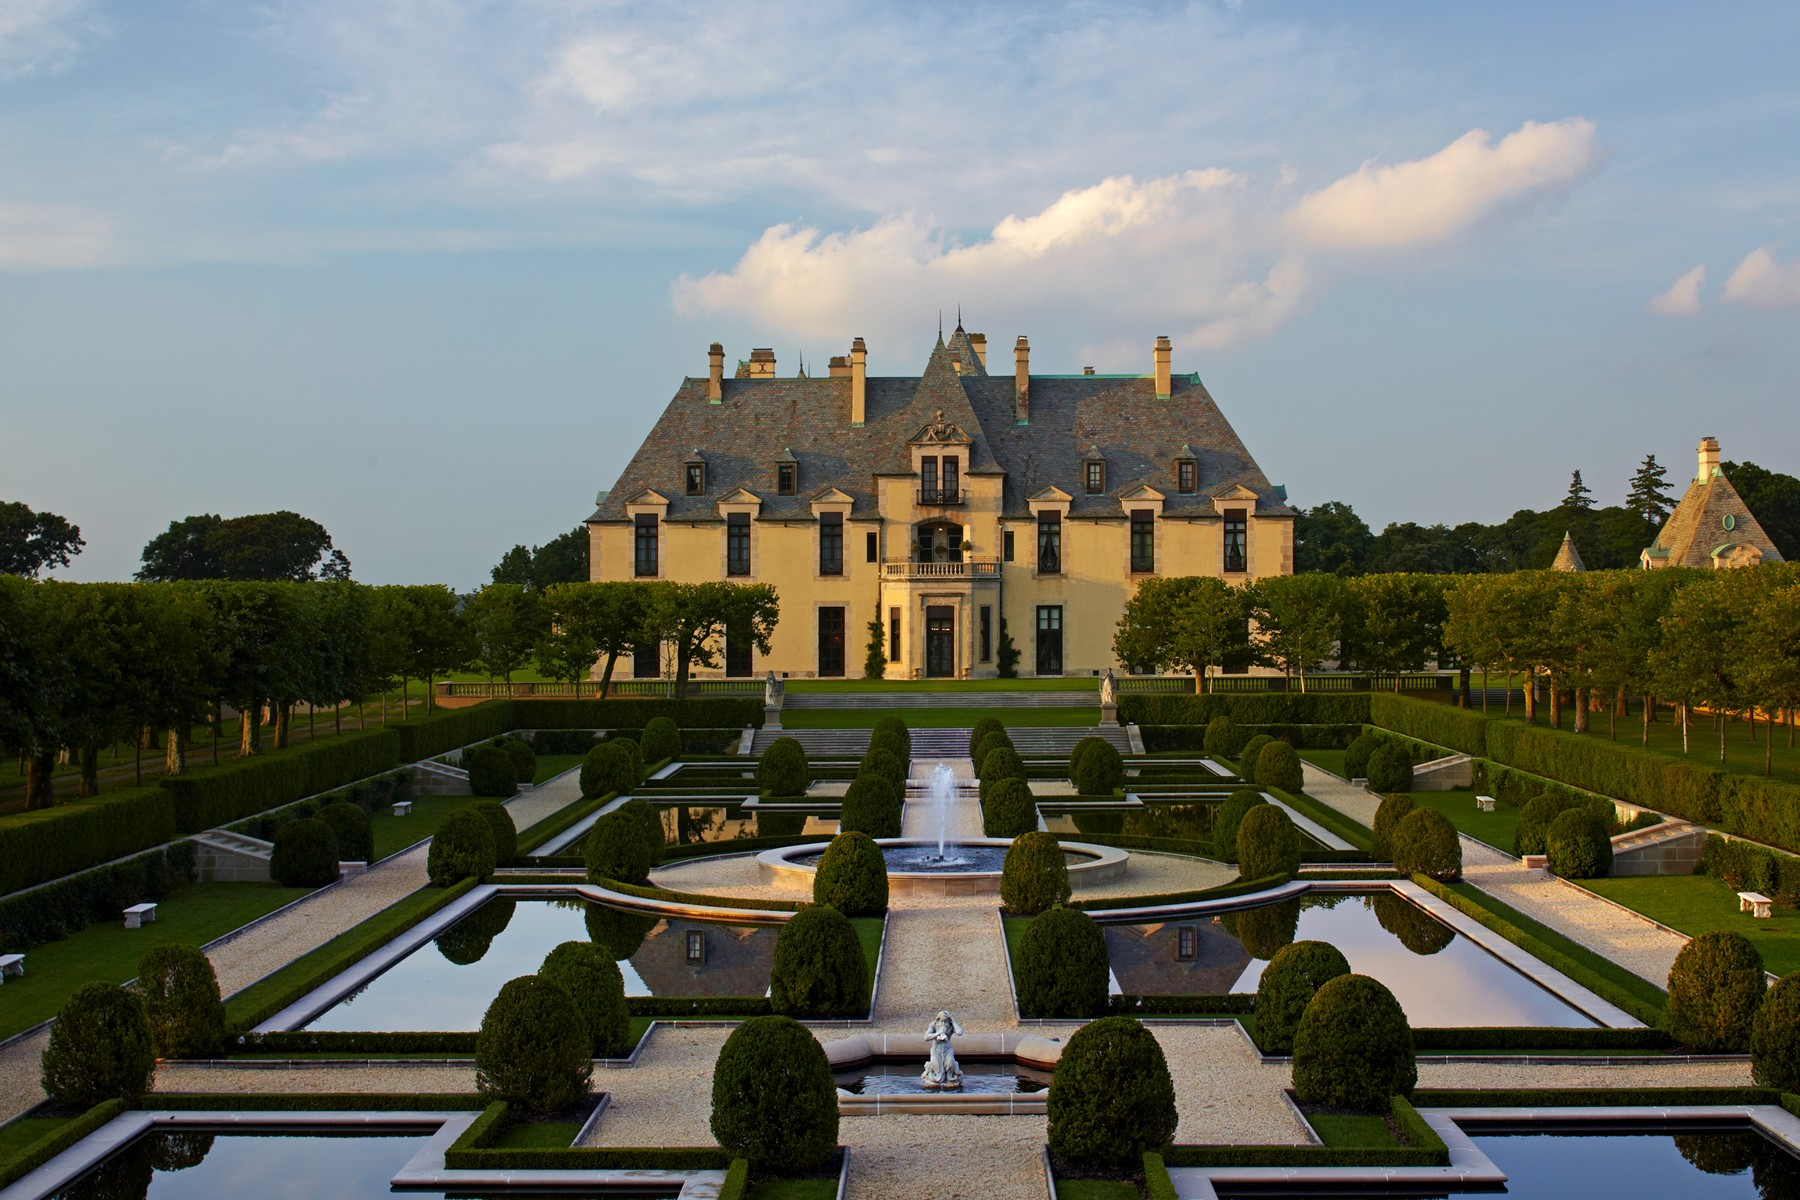 OhekaCastle_Formal_Gardens.jpg